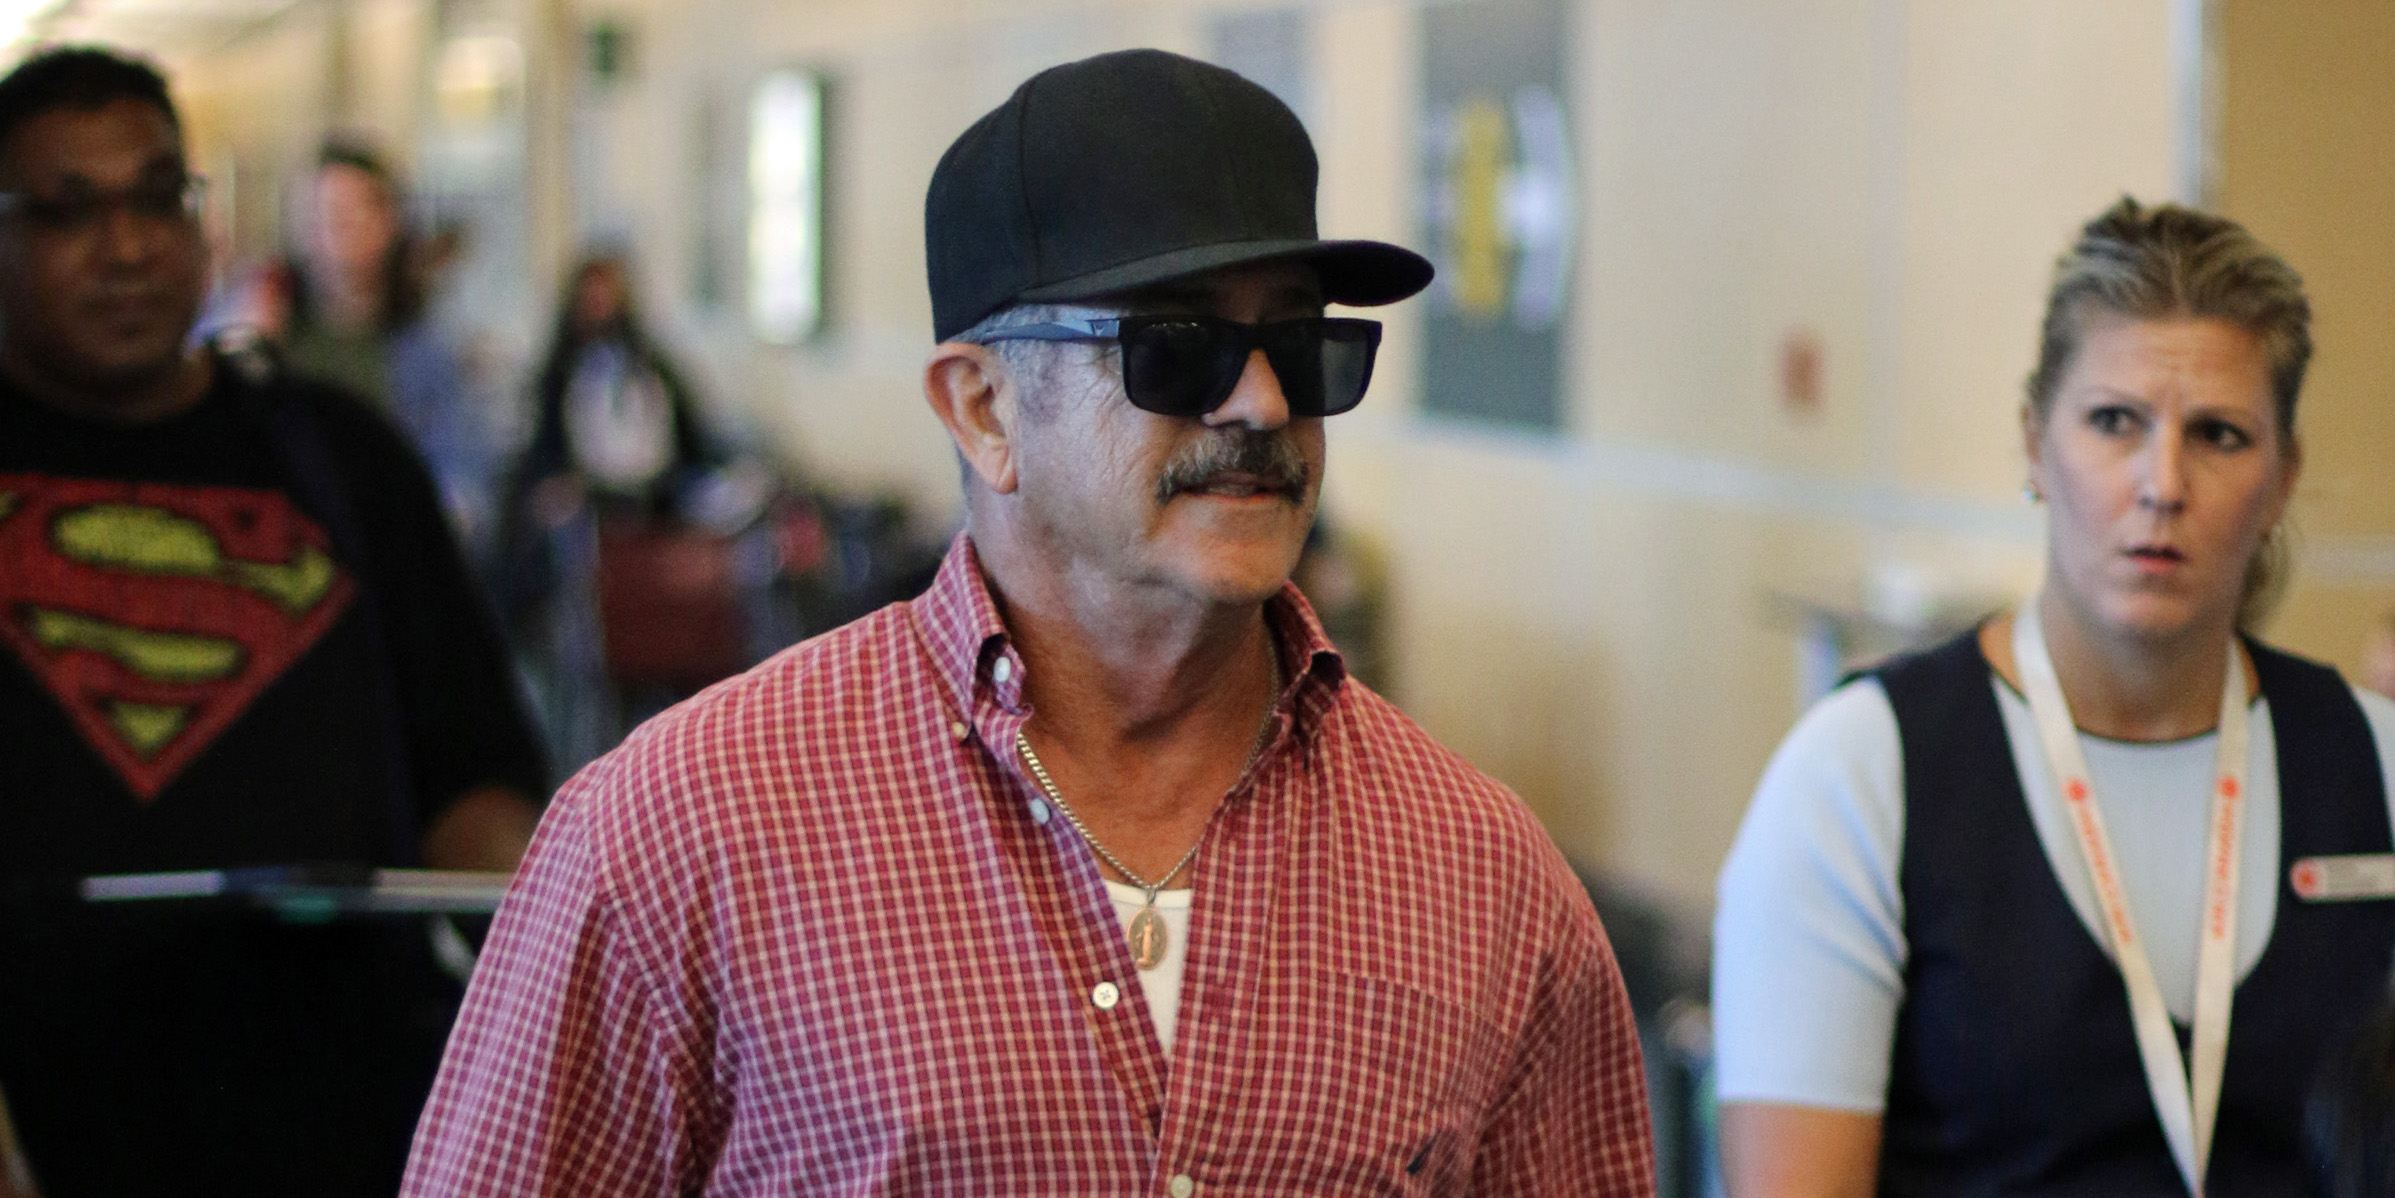 Mel Gibson departs Vancouver airport (PHOTOS)